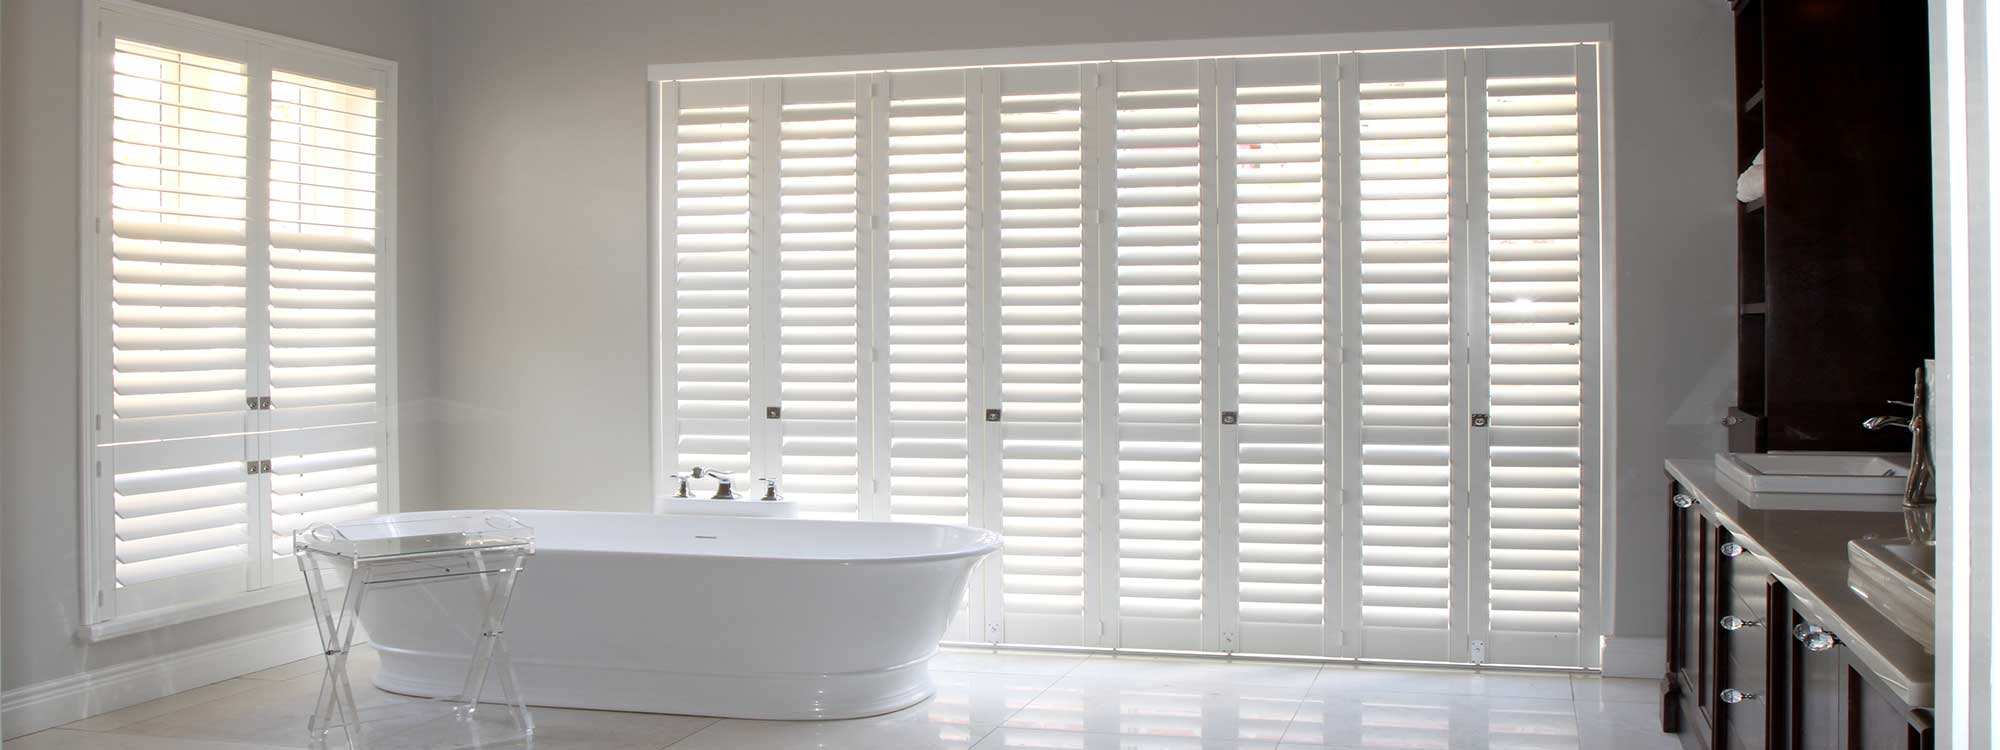 Decowood-shutters-bathroom-white-interior-